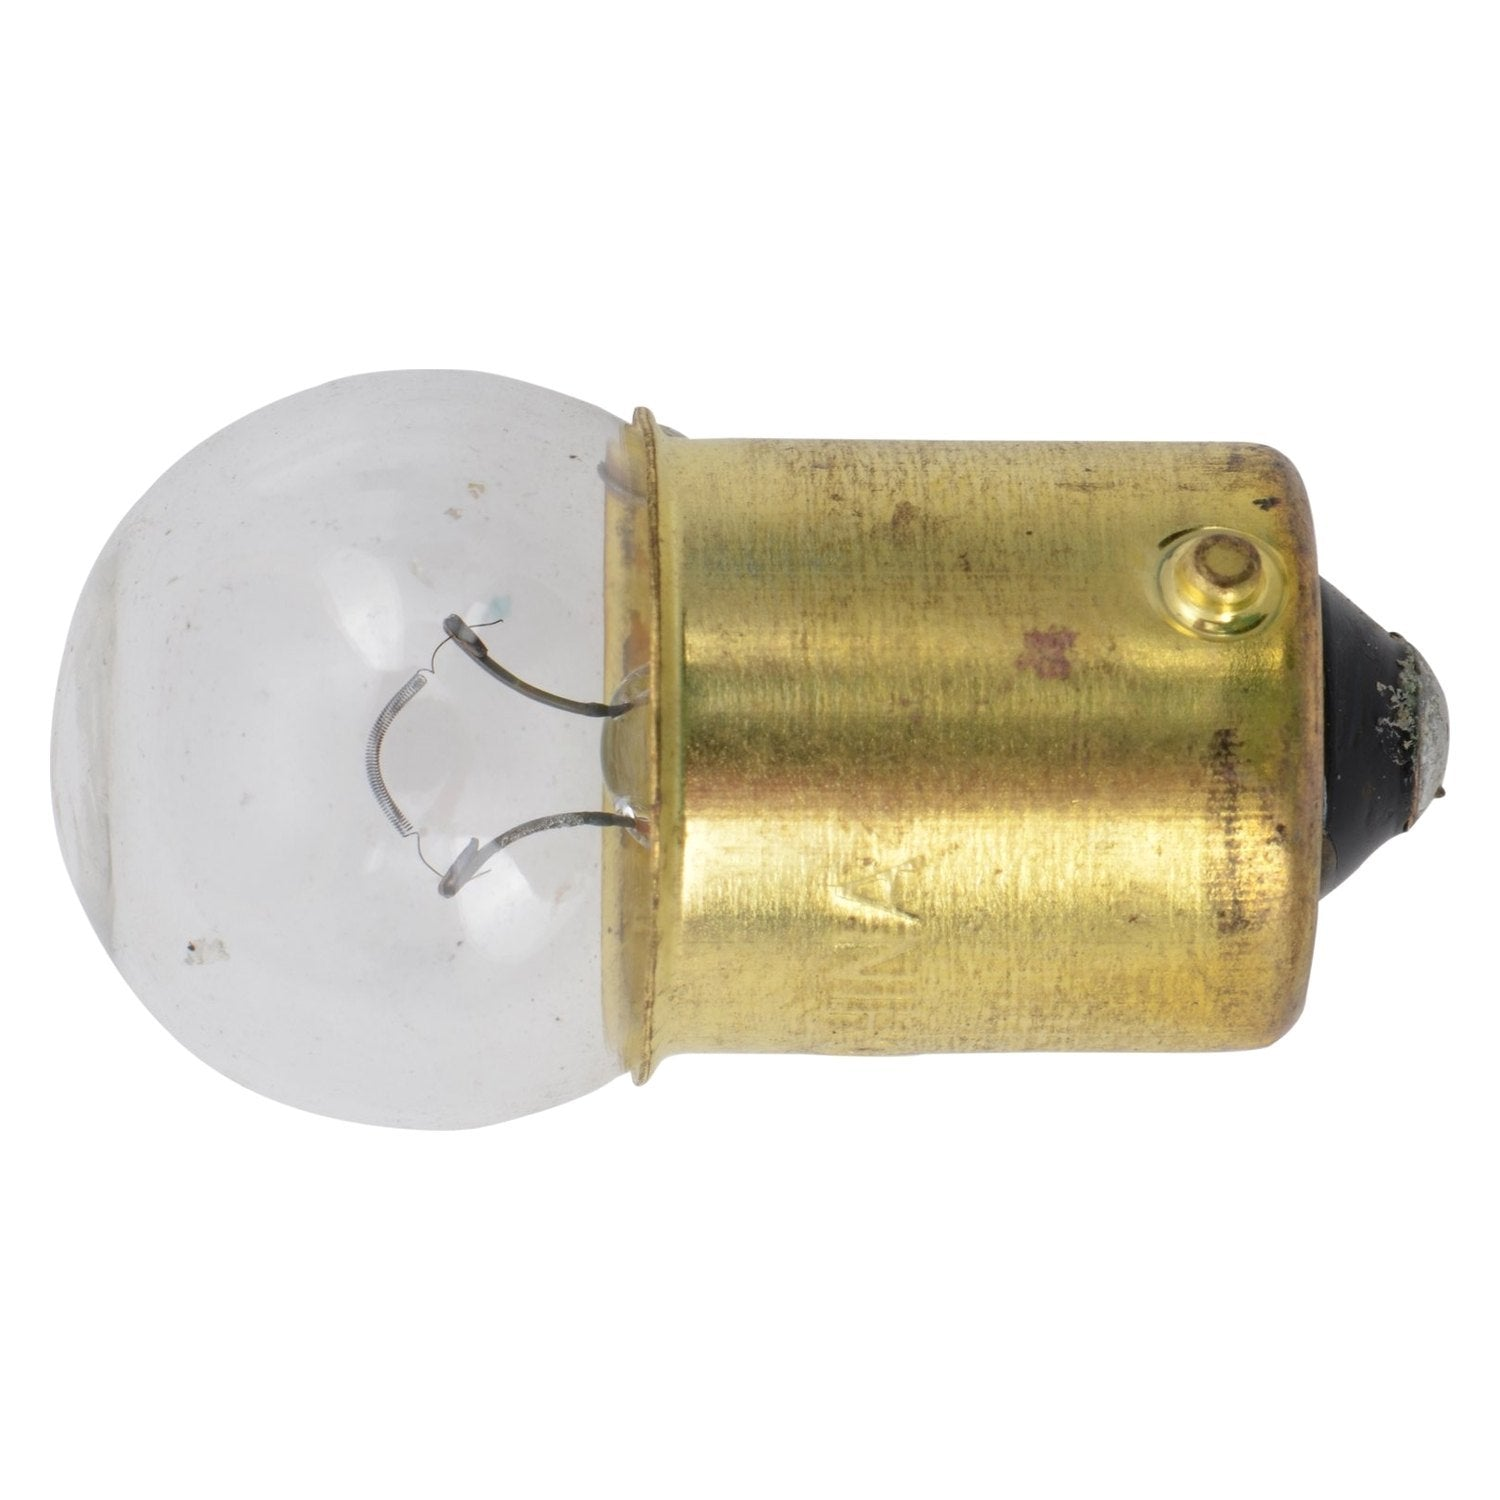 2 Pack - Philips 89 7.5w 13v G6 Automotive Bulb